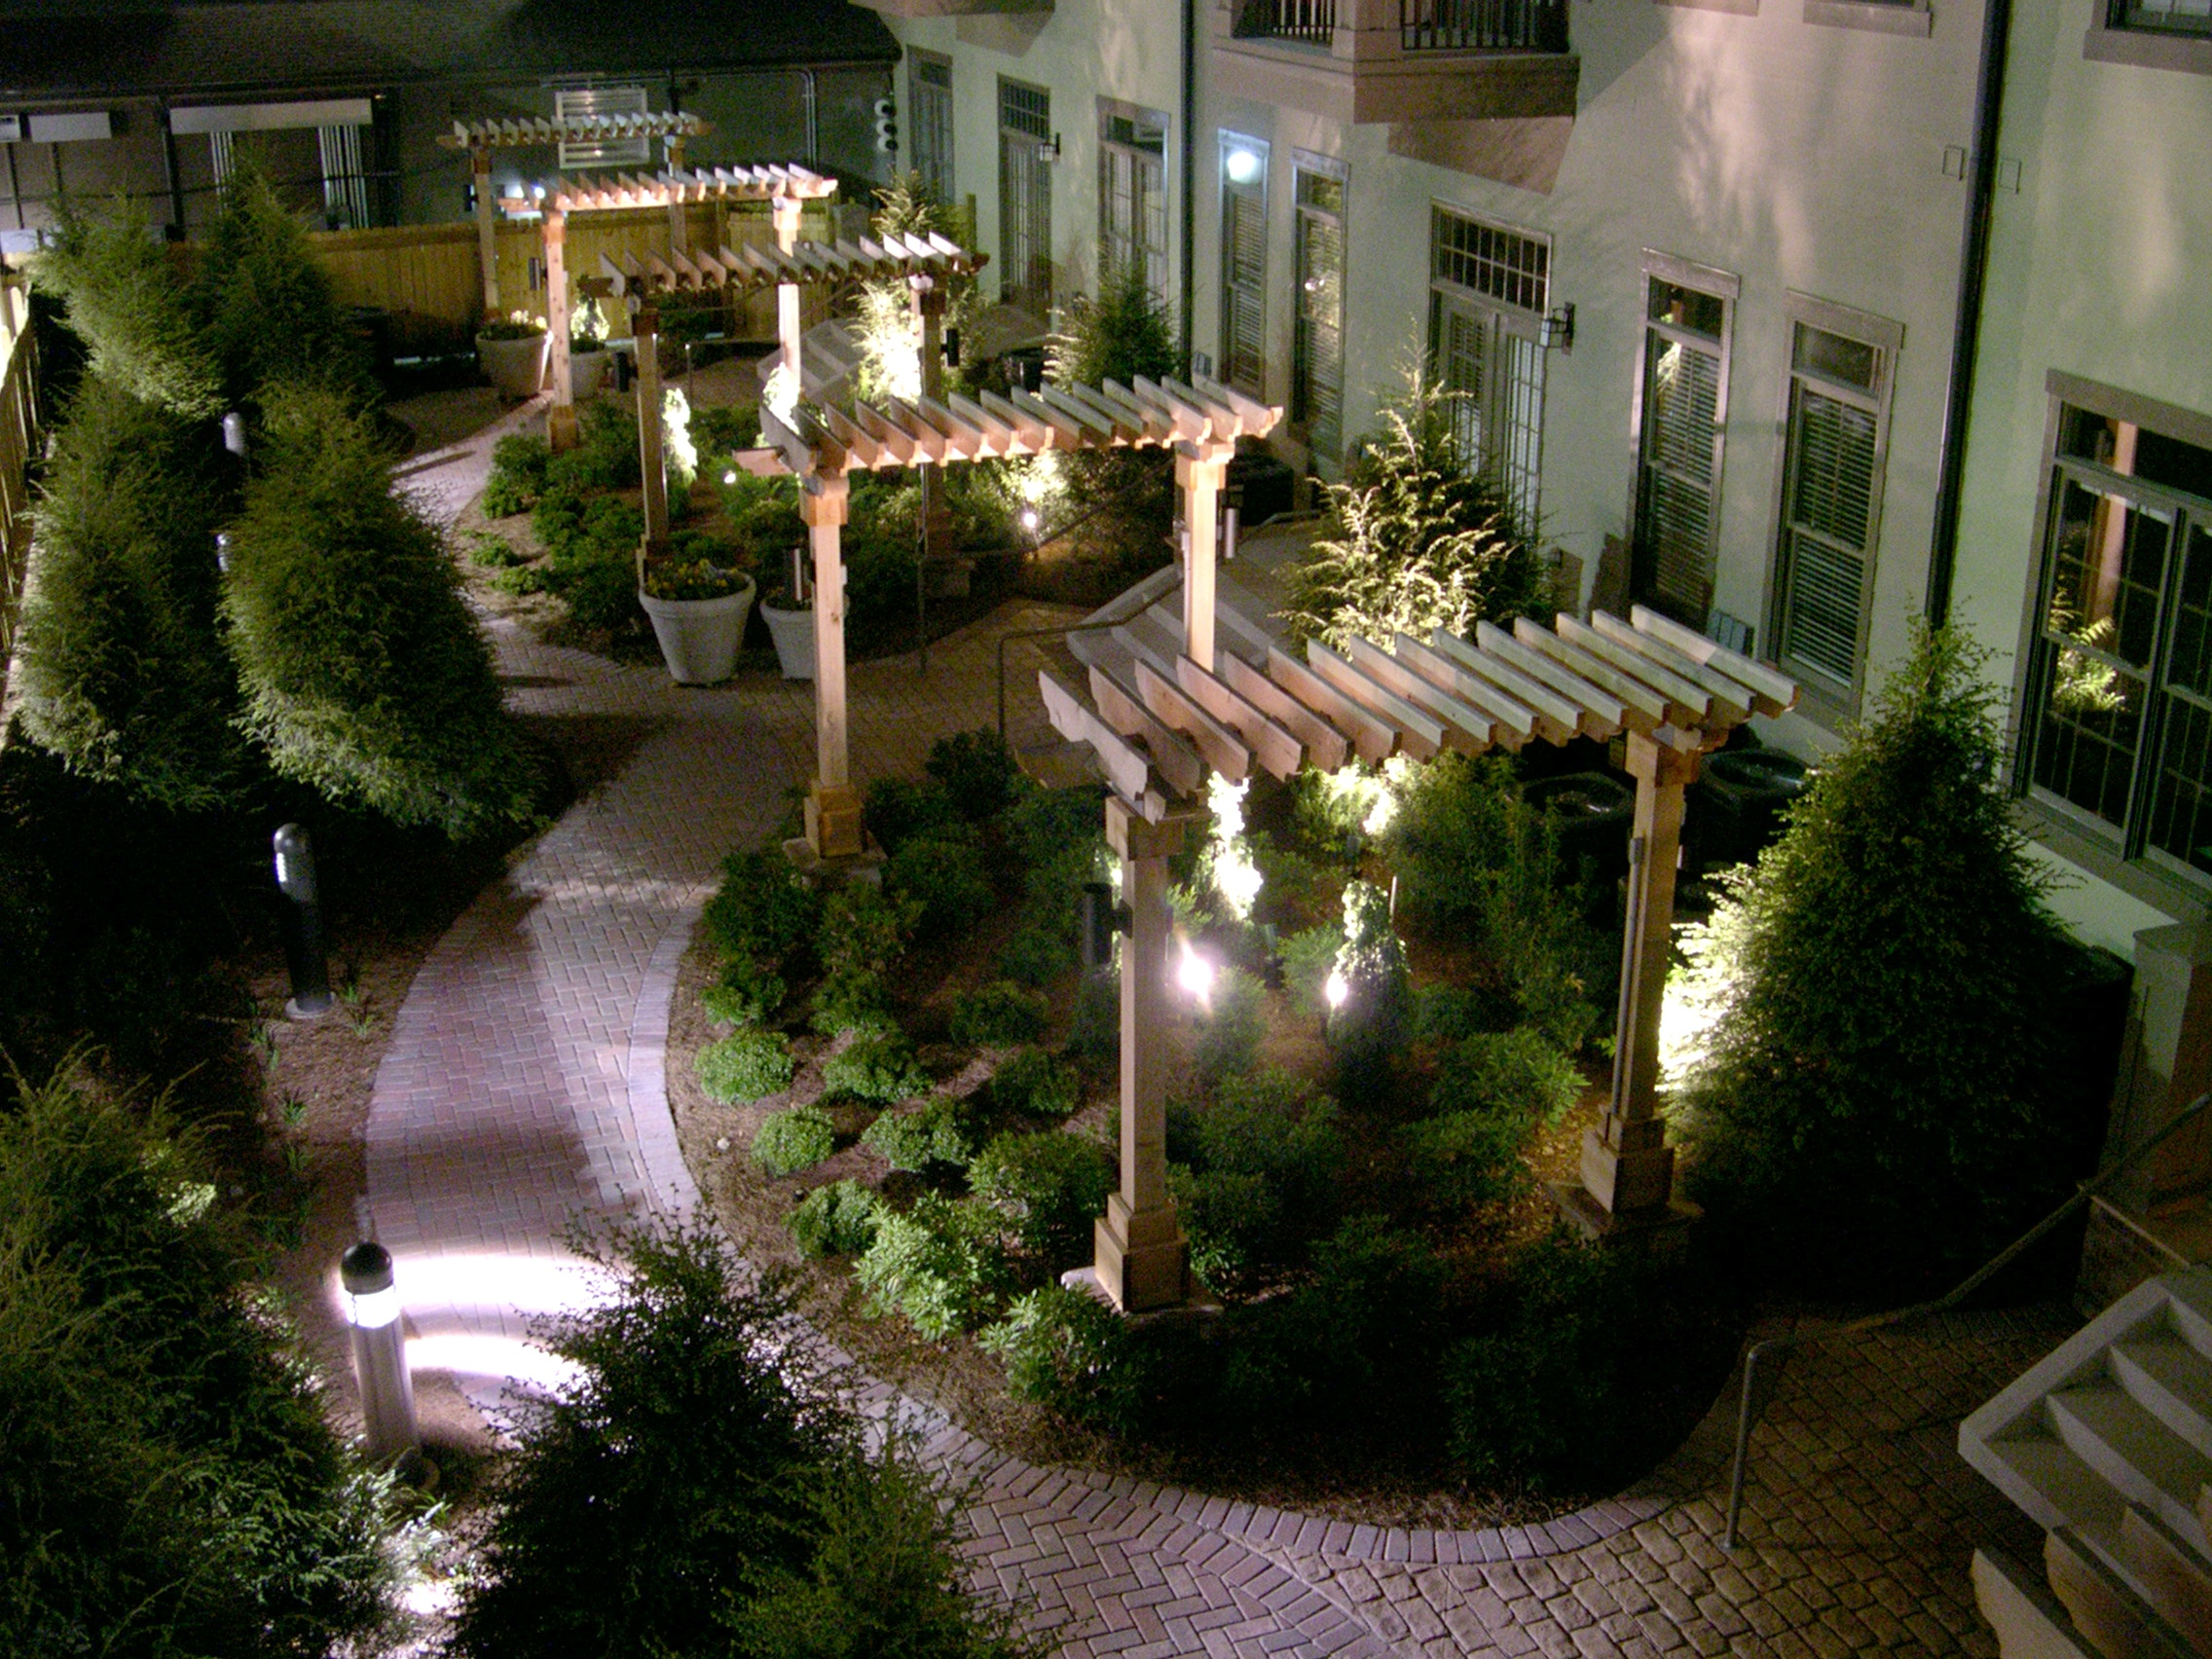 landscaping is one way to get tenants to renew their lease through landscaping